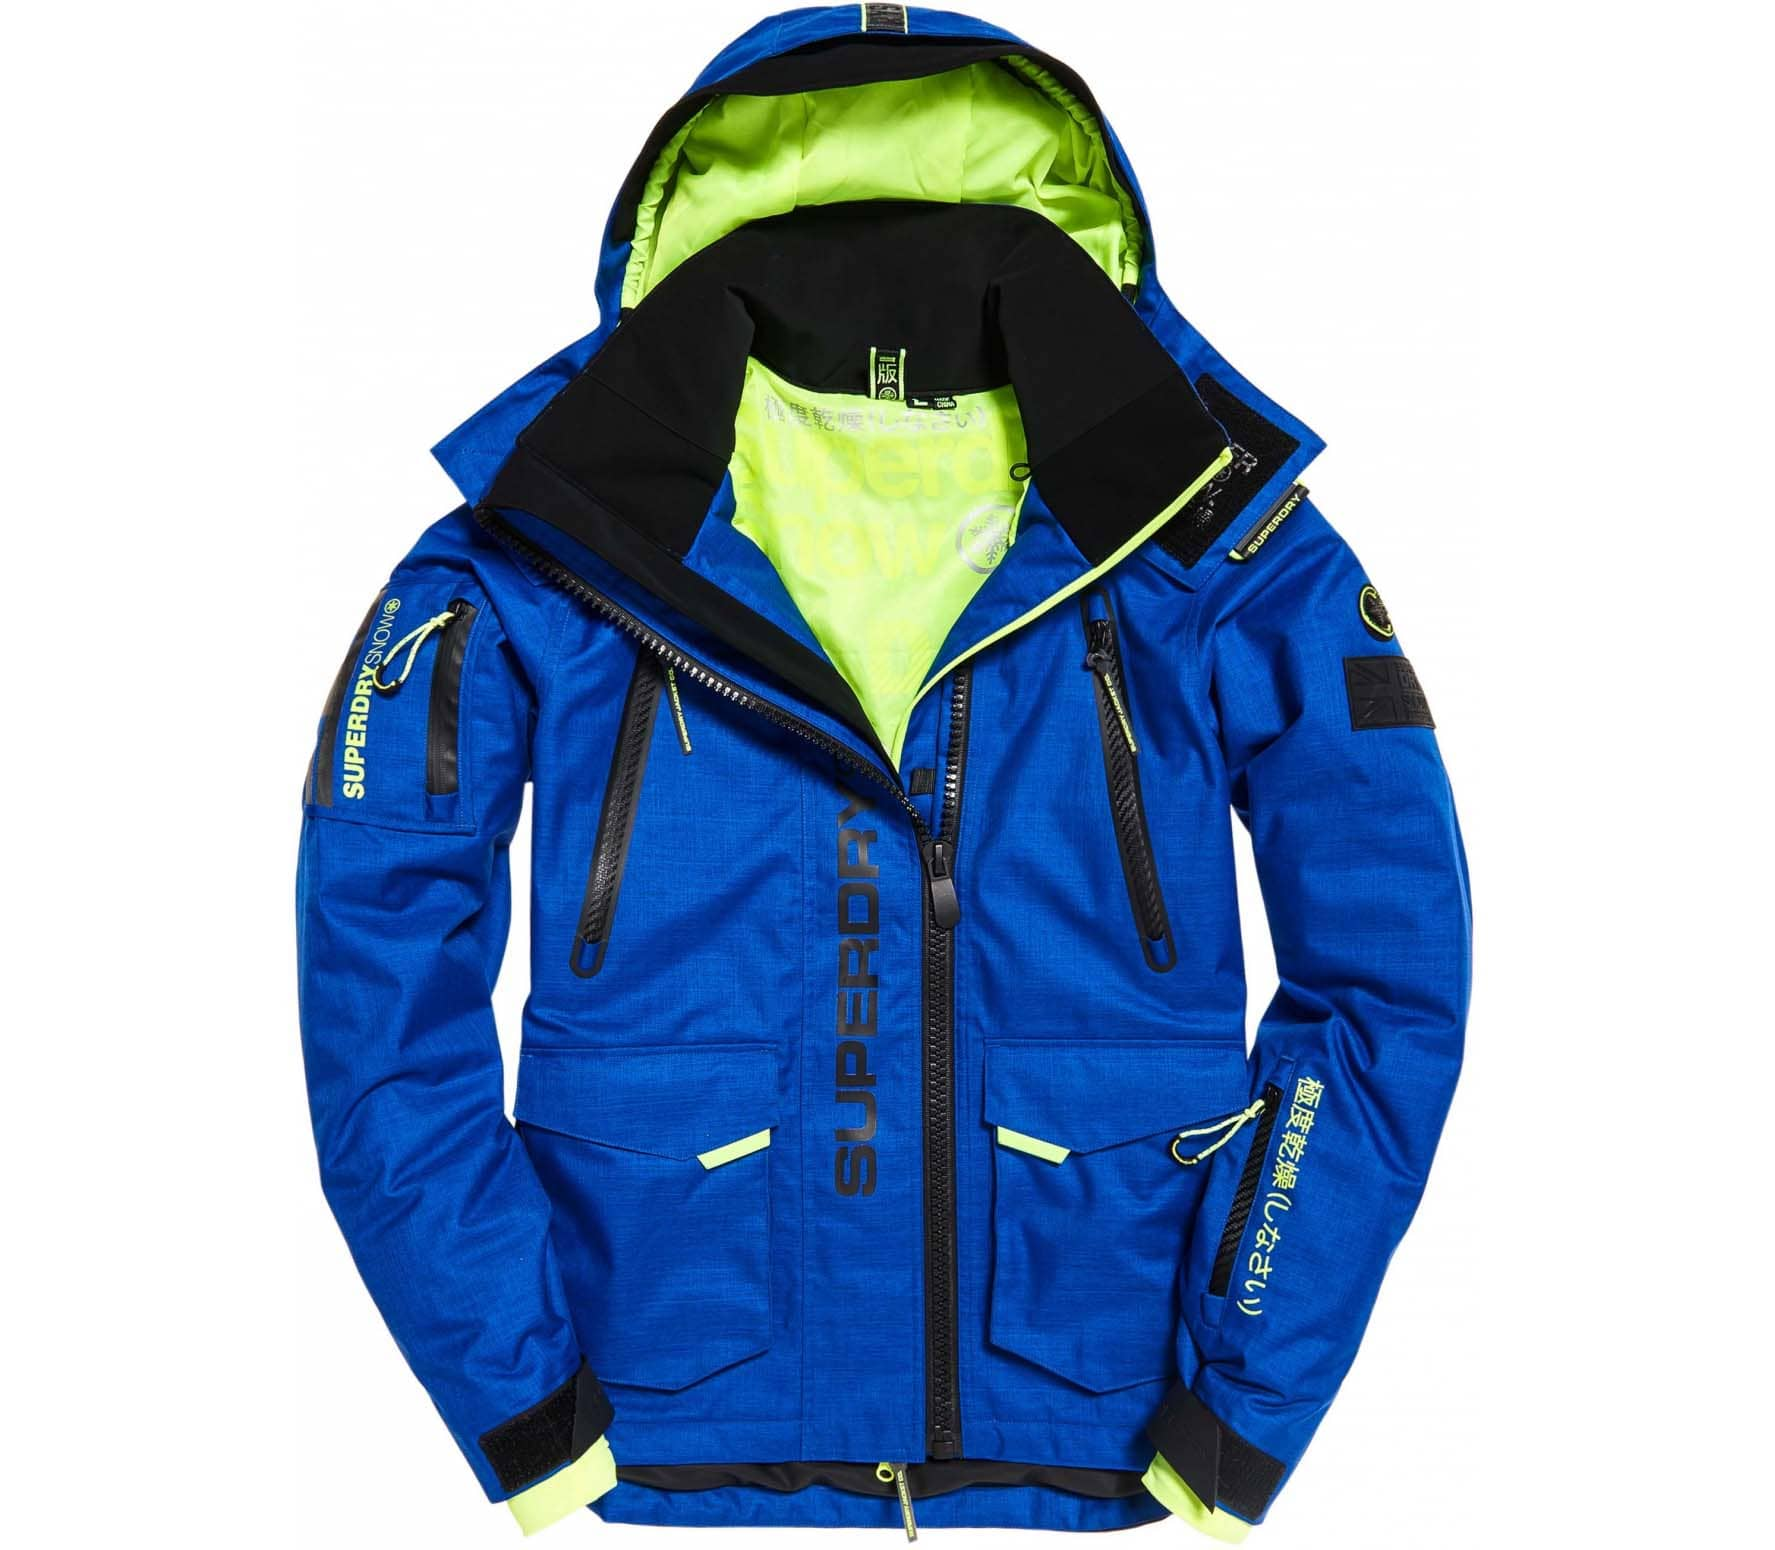 Ultimate Kopen Ski Heren Rescue blauw Jas Superdry Snow Online zFPfwWq